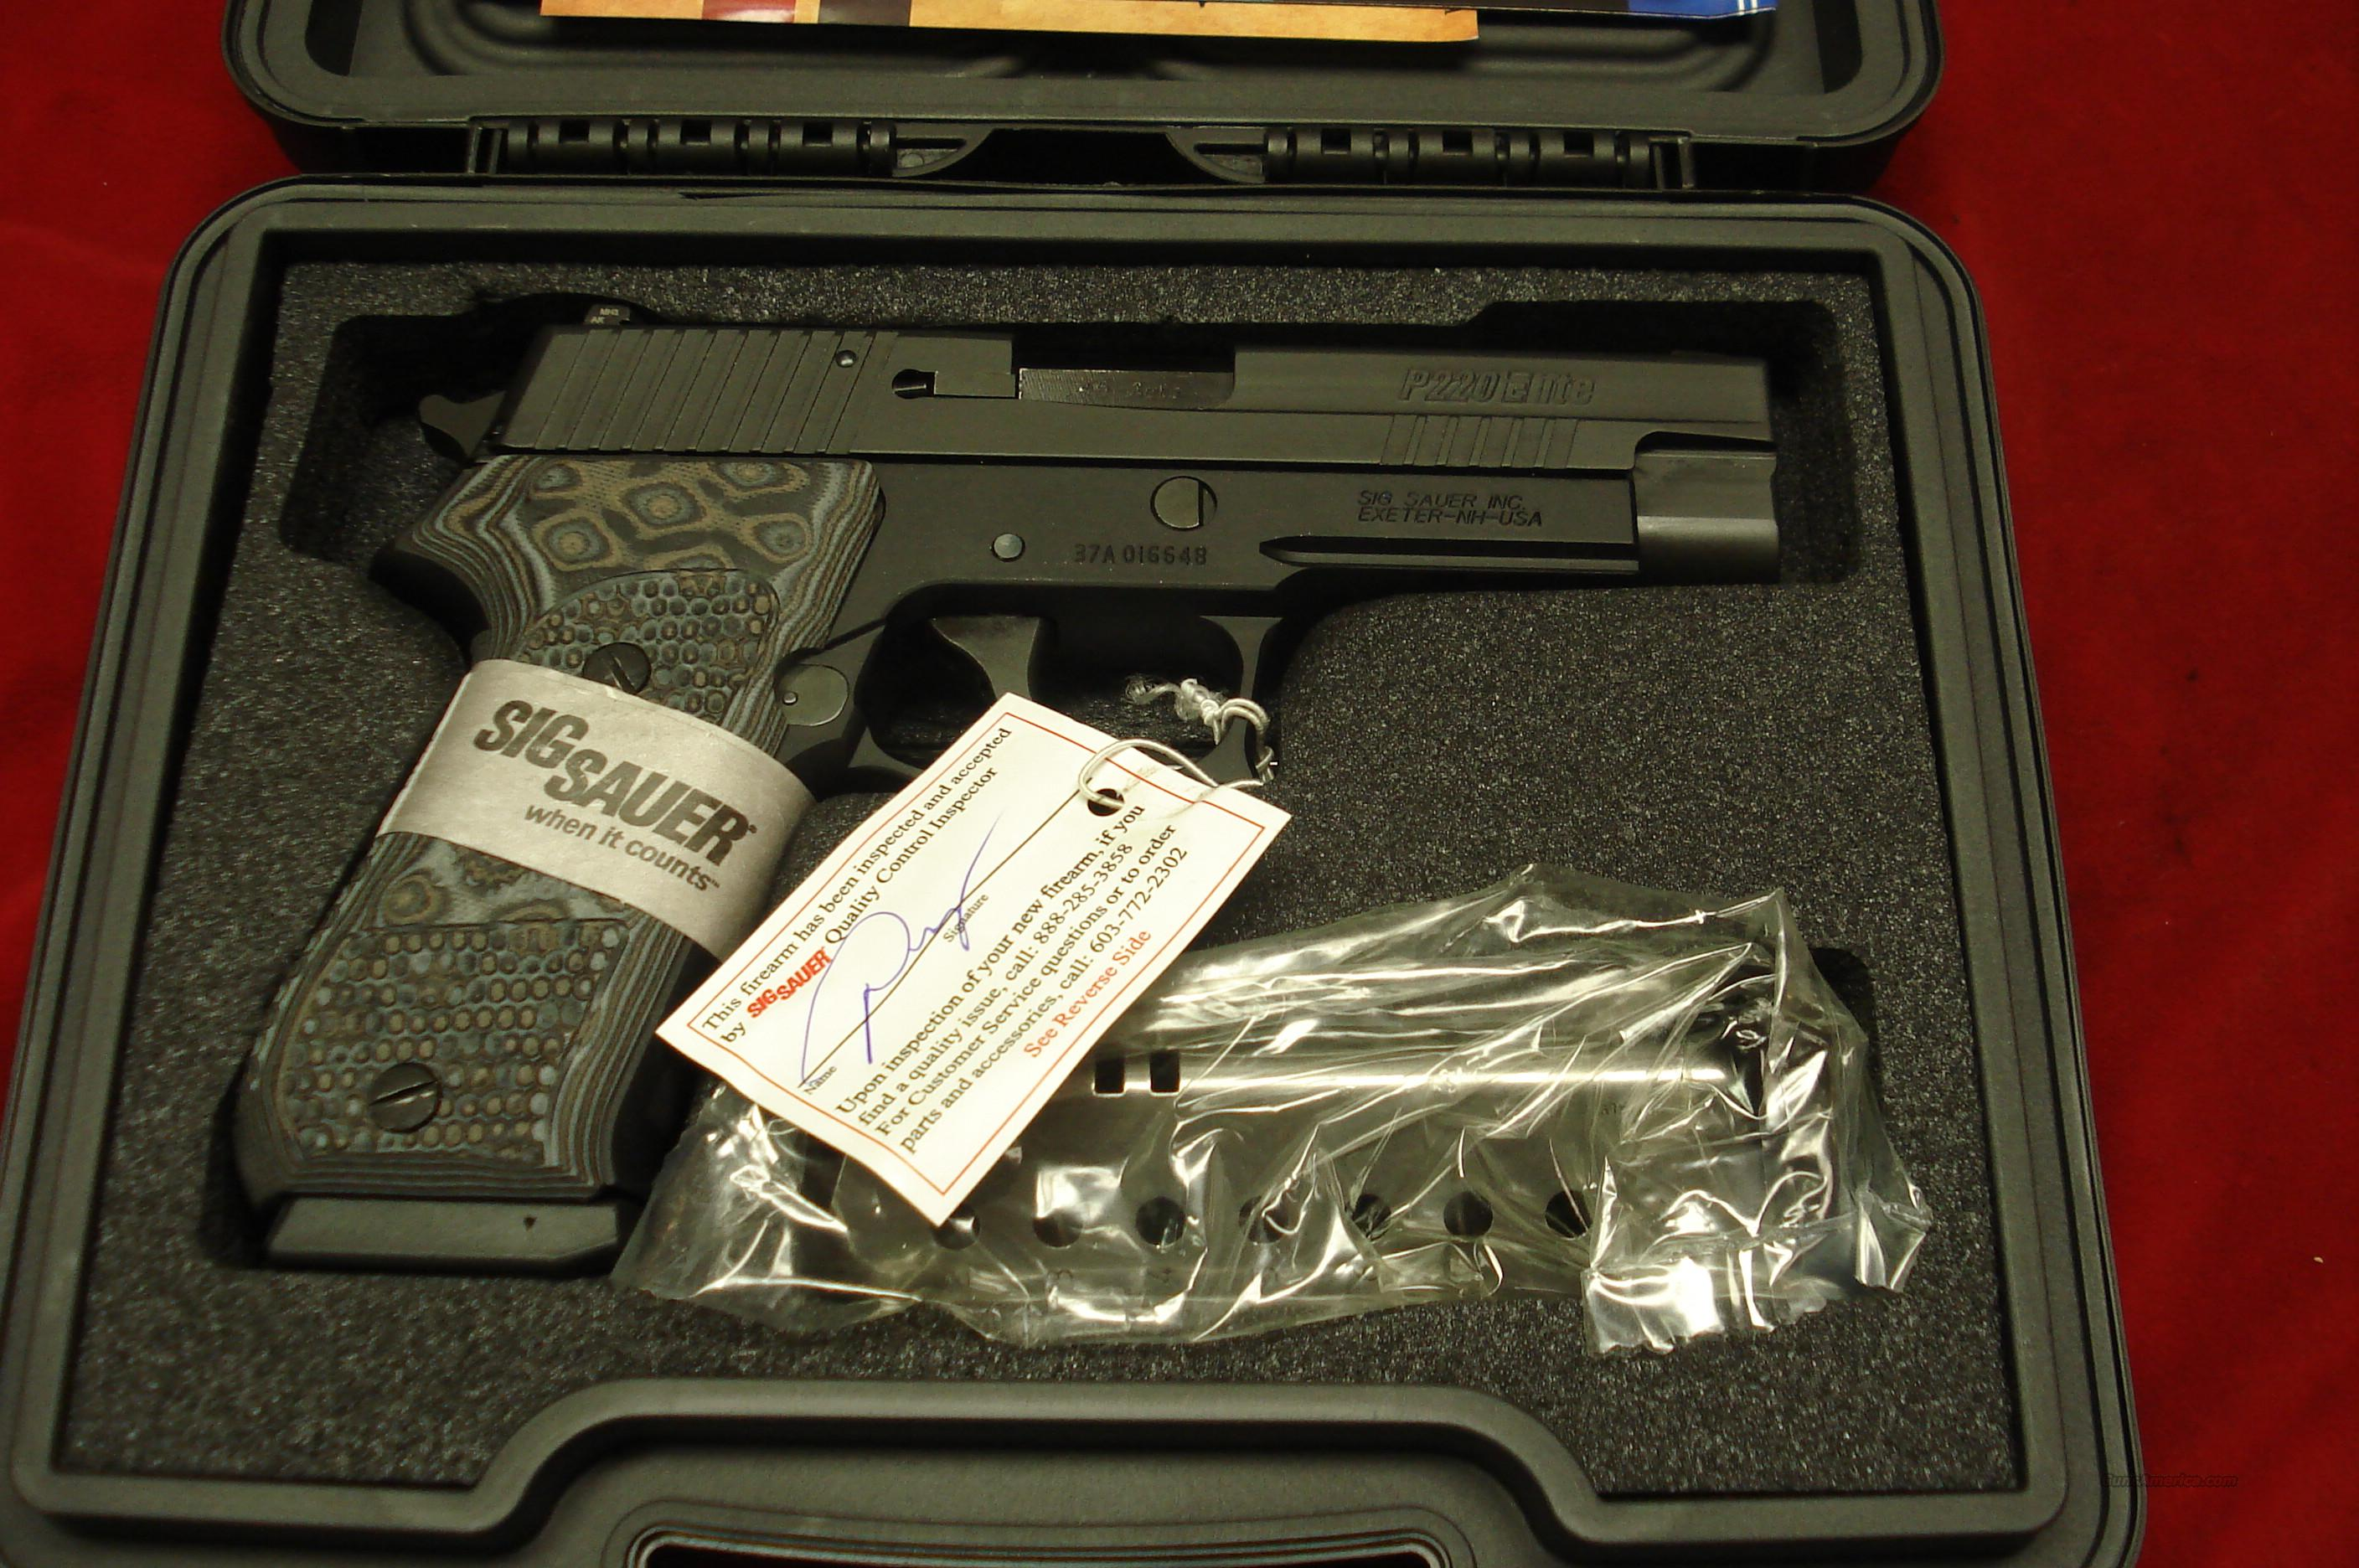 SIG SAUER P220 EXTREME 45ACP. W/NIGHT SIGHTS NEW   Guns > Pistols > Sig - Sauer/Sigarms Pistols > P220